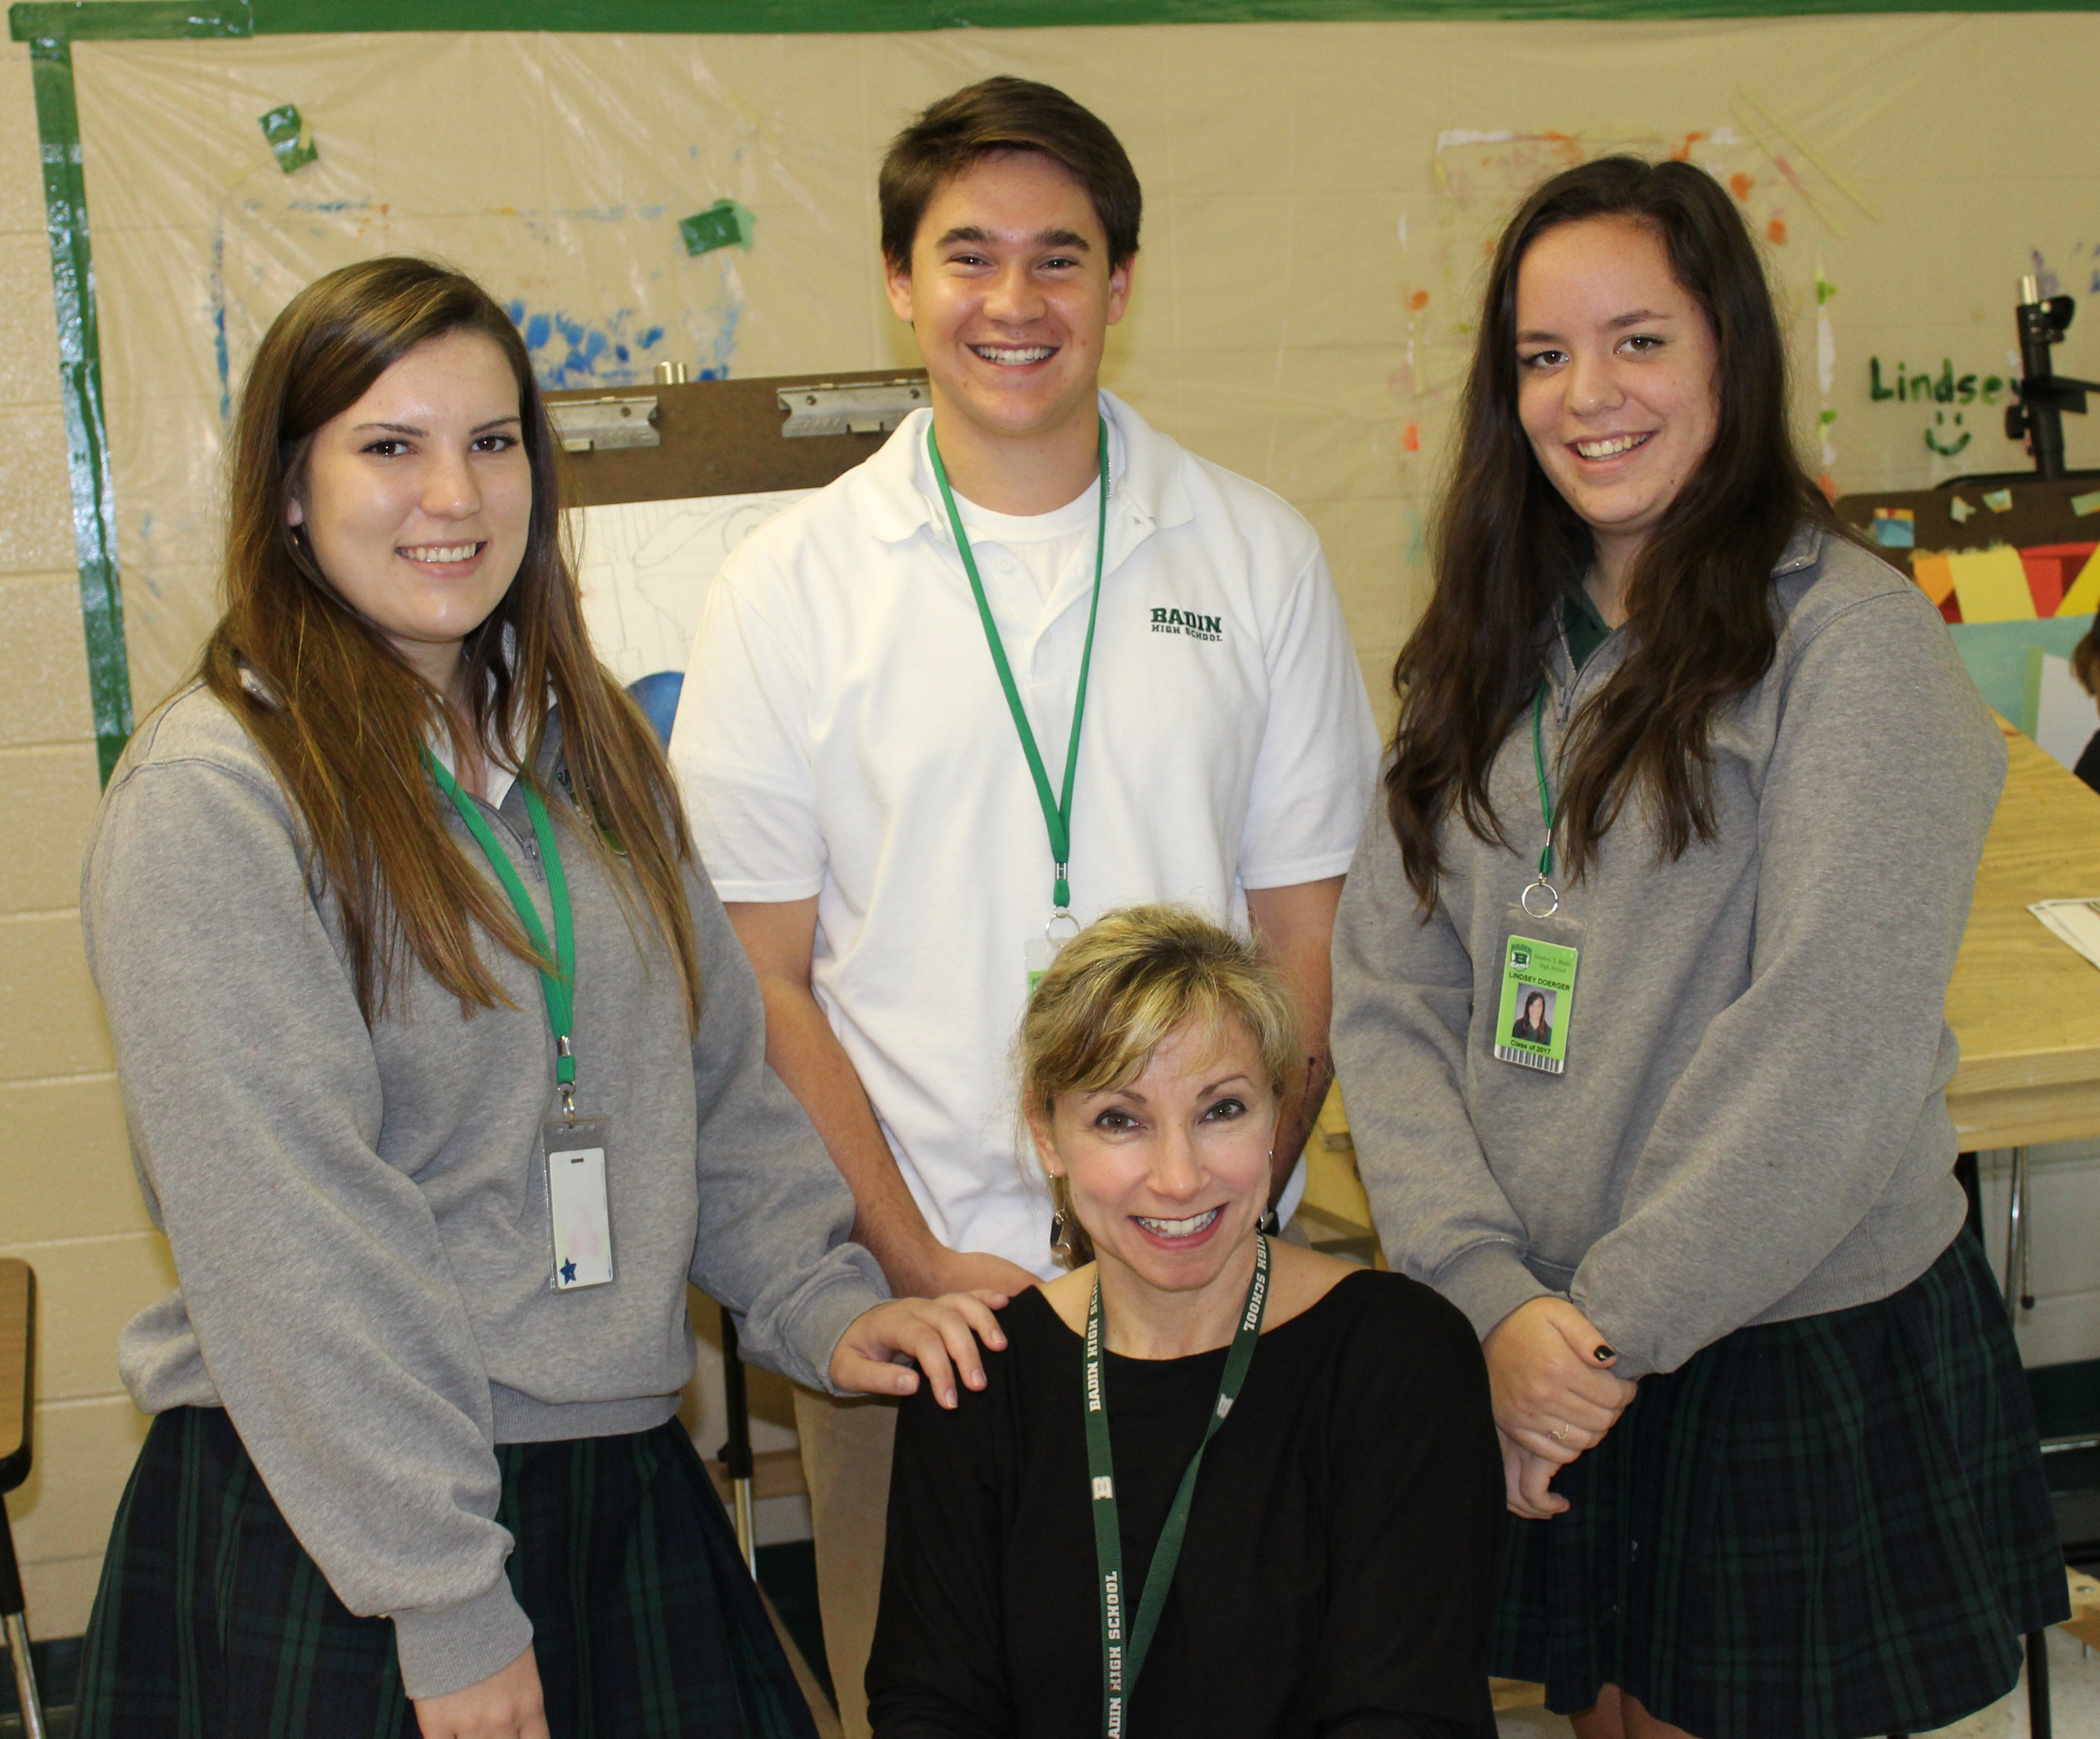 From left in the photo are Badin seniors Claire Smith, Dominic Grime and Lindsey Doerger, with art teacher Mrs. Sarah Daniels in front. (Courtesy Photo)